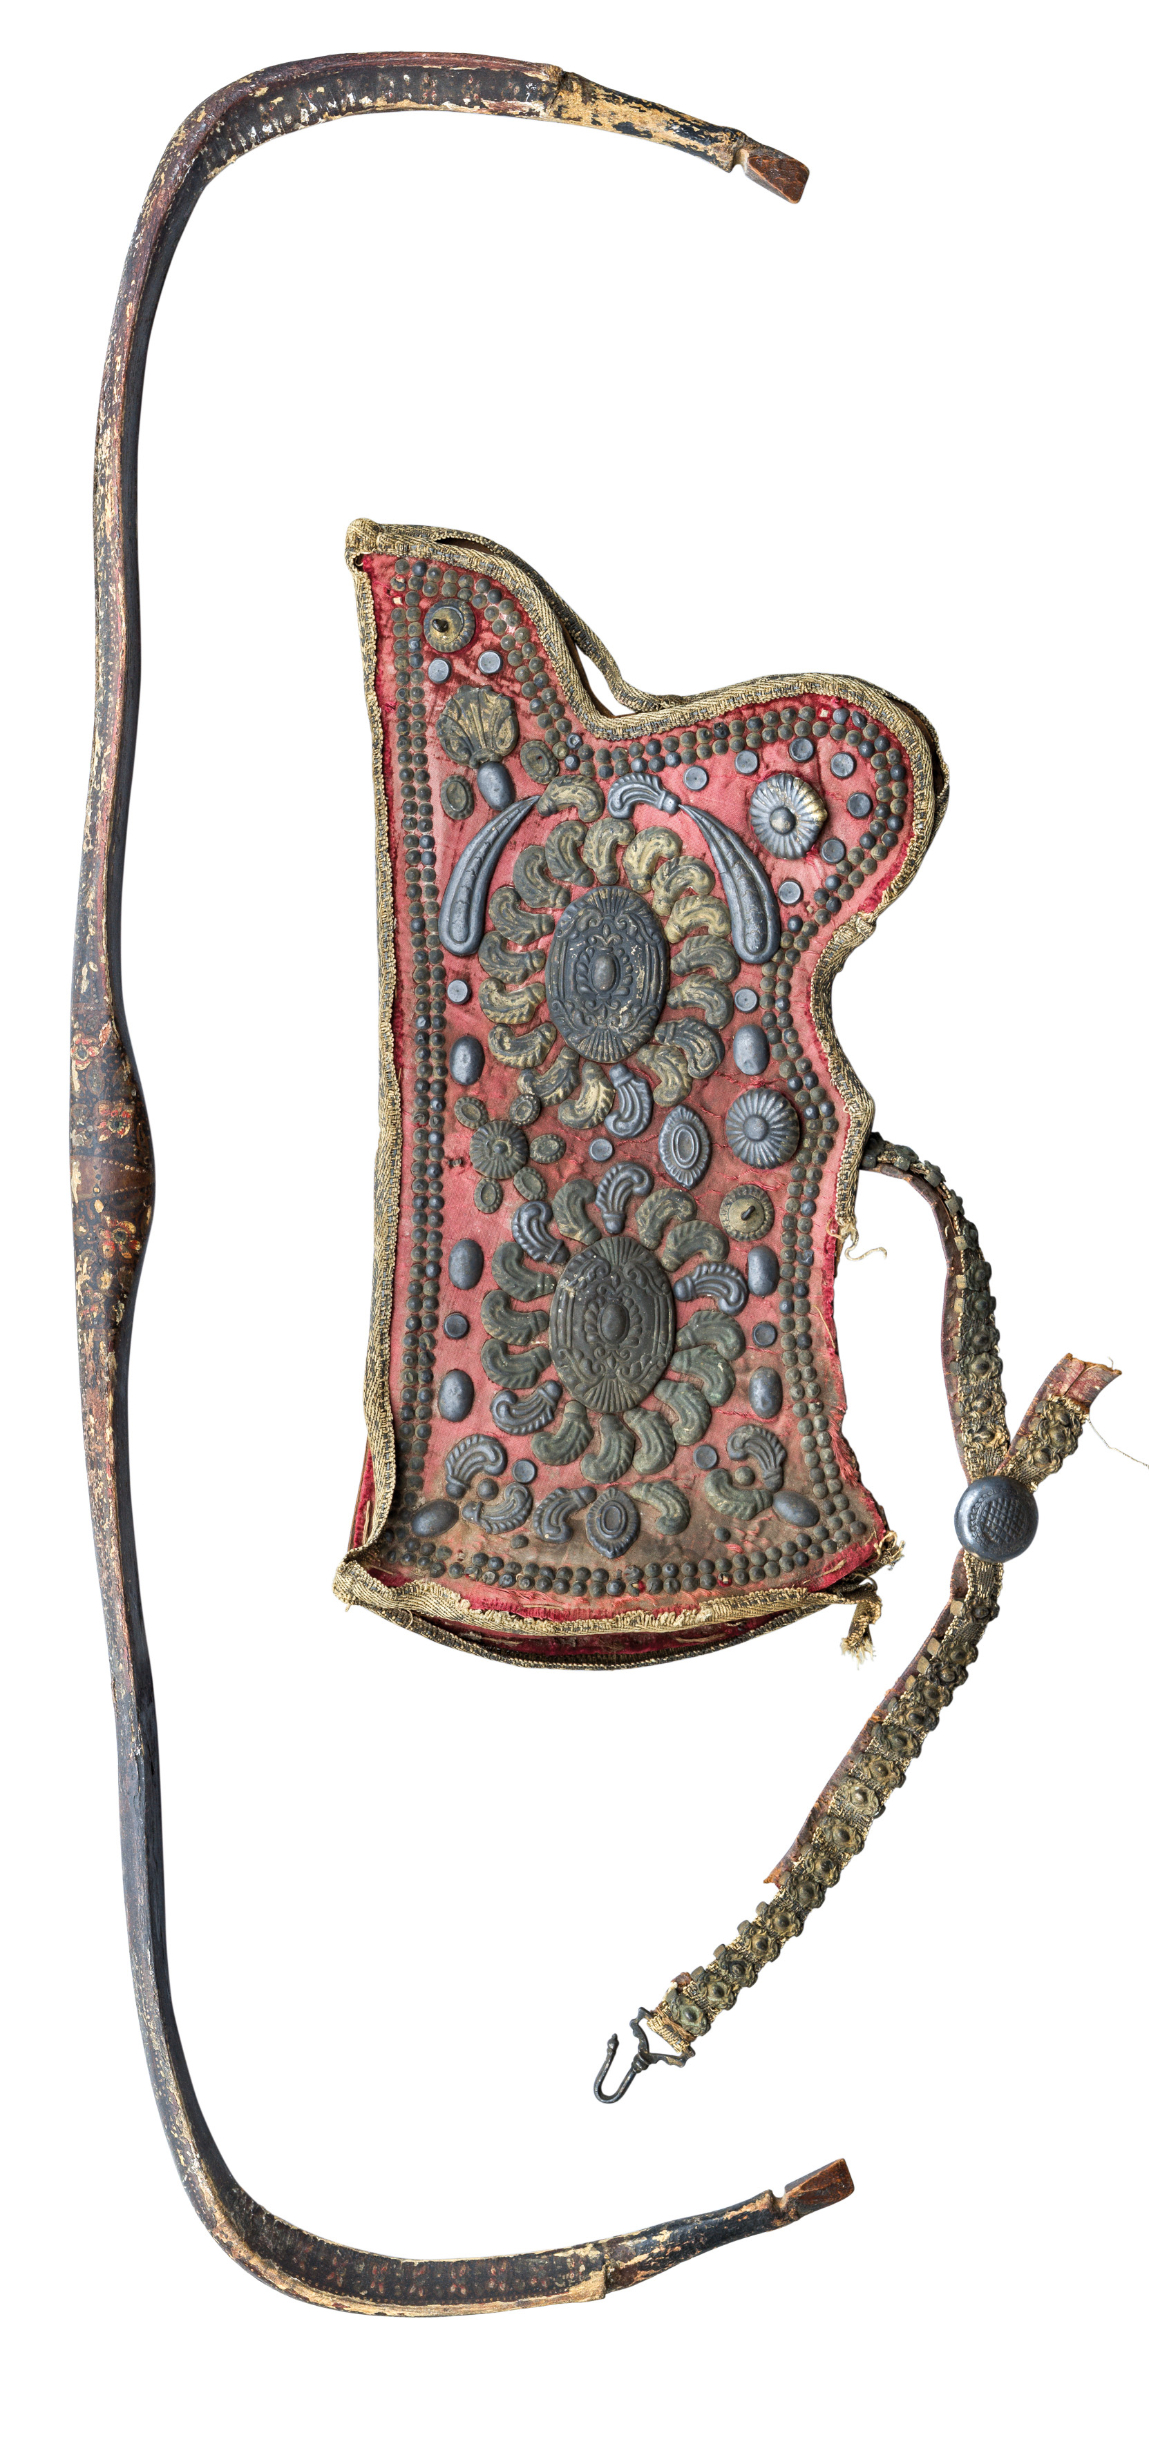 Ⓦ A RARE OTTOMAN QUIVER AND BOW^ EARLY 18TH CENTURY